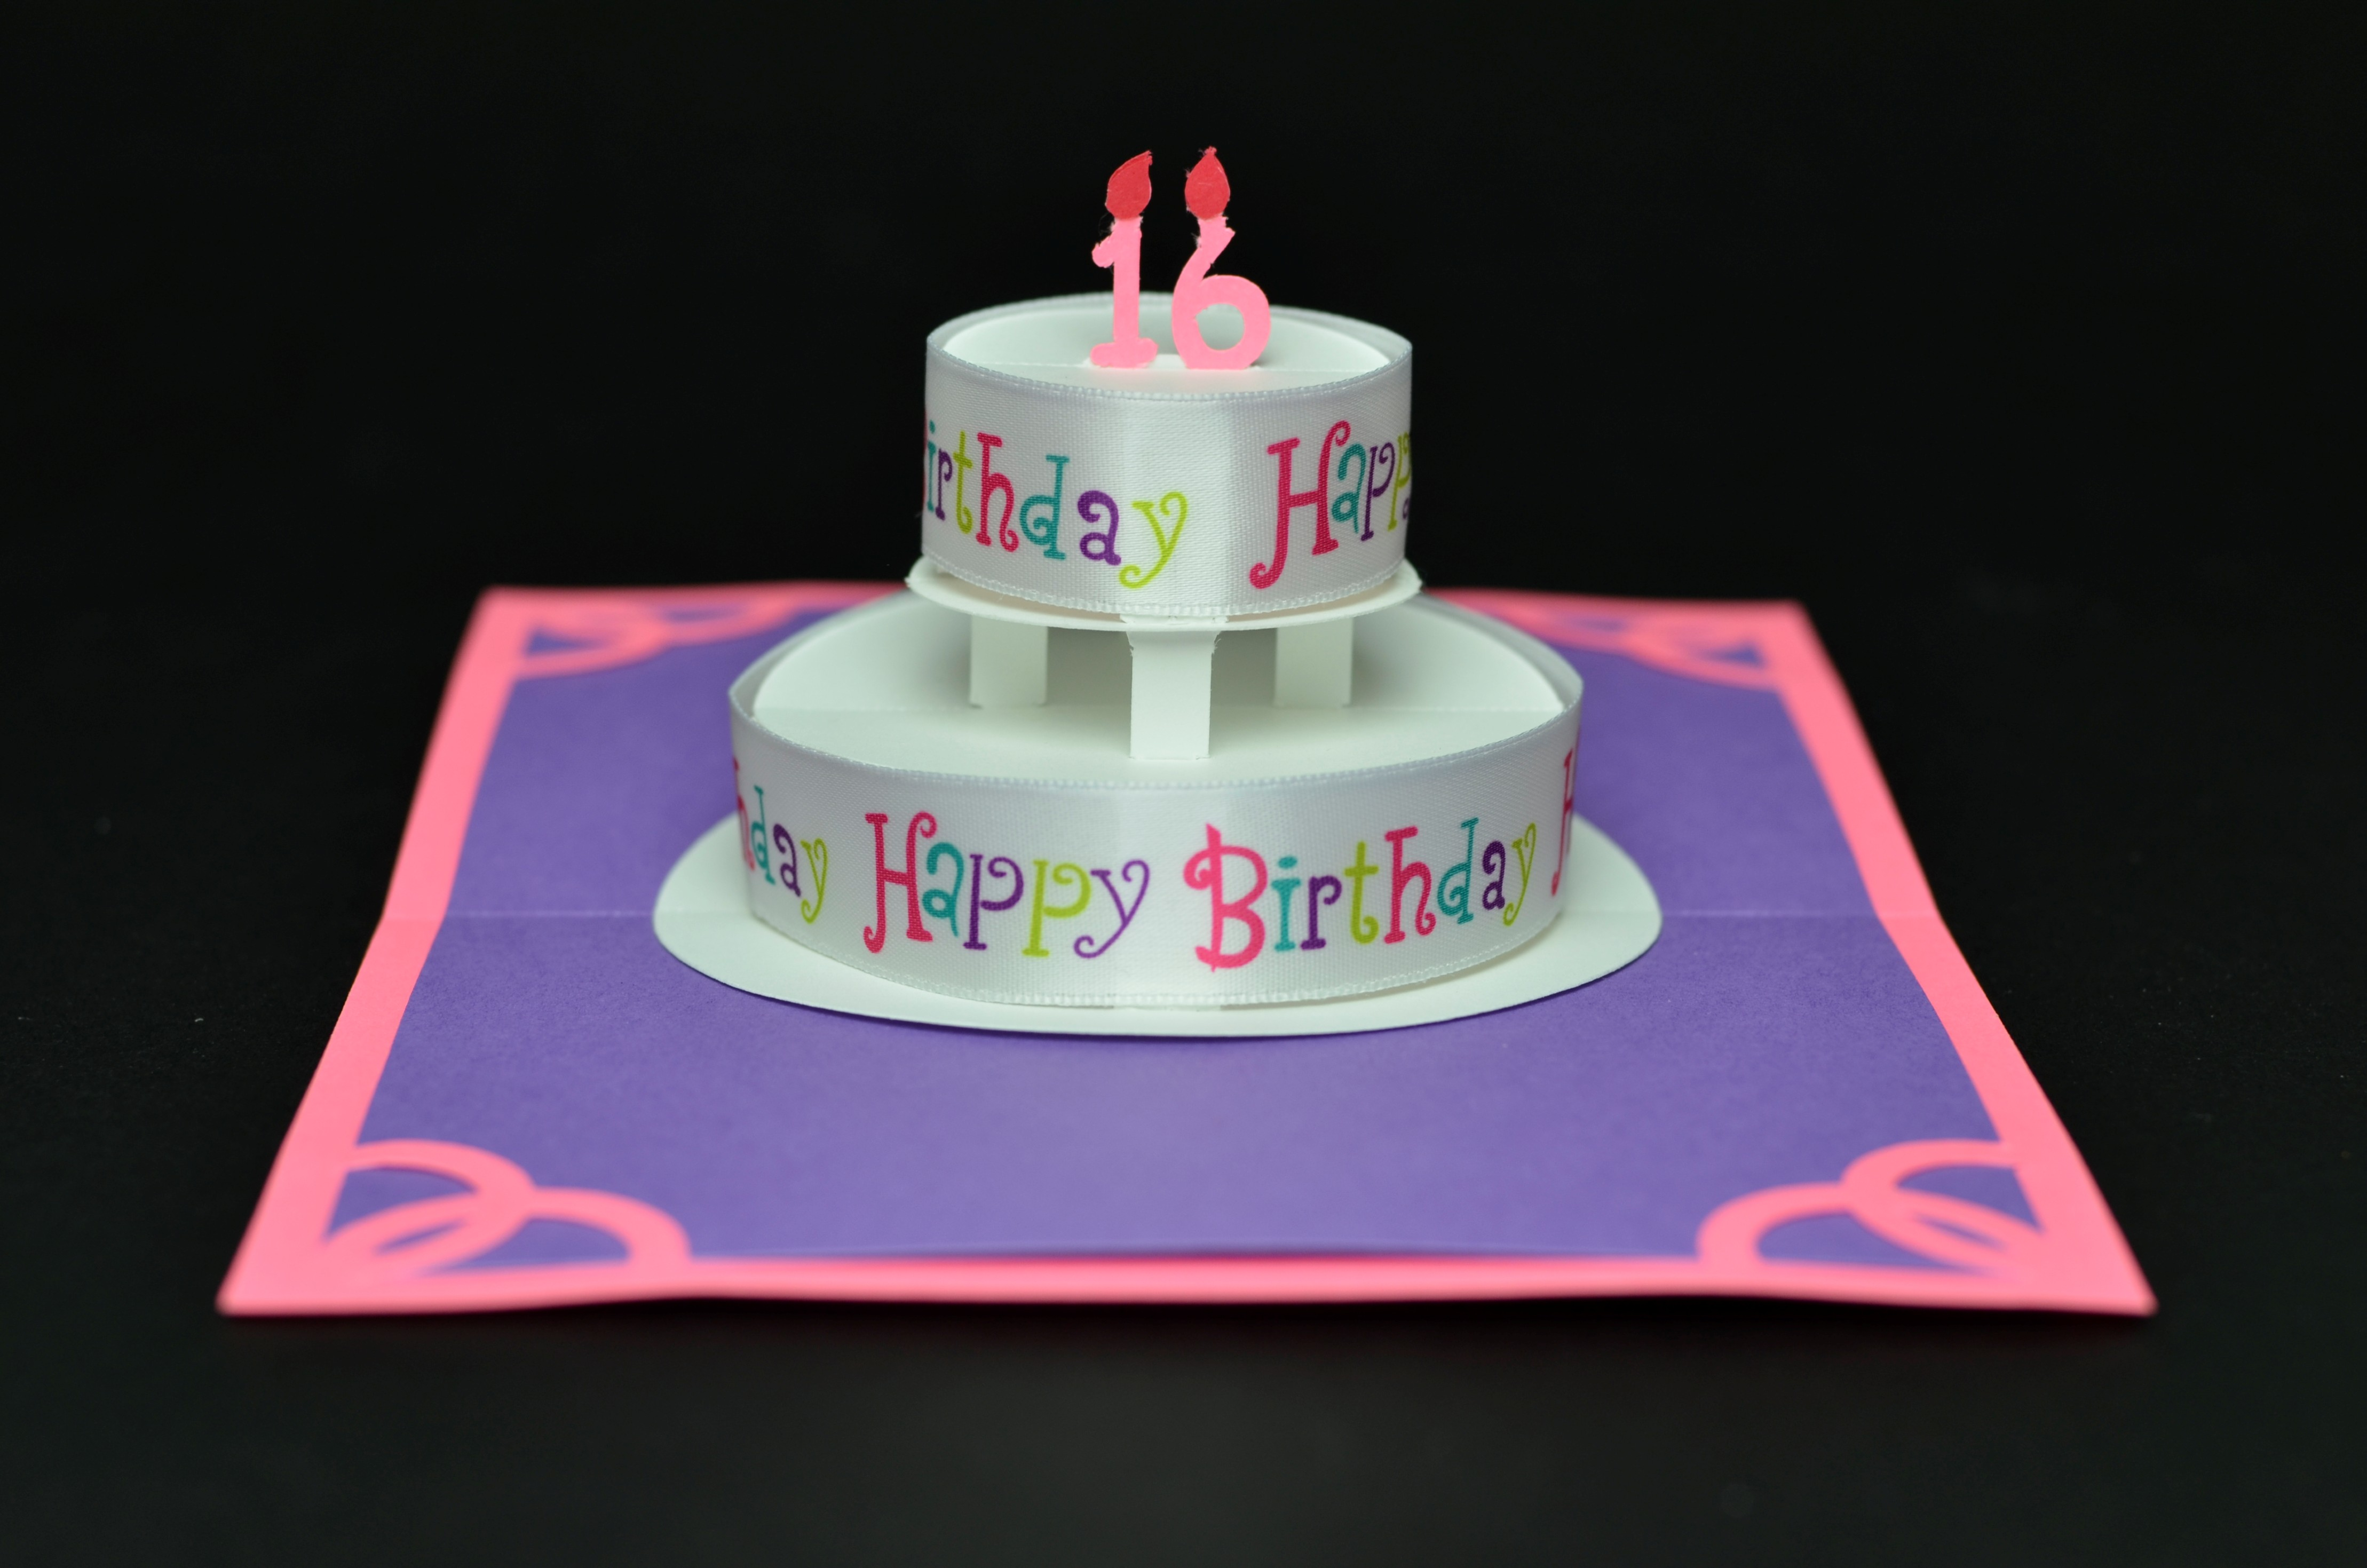 happy birthday pop up card ; Birthday-Cake-Pop-Up-Card-hb-ribbon